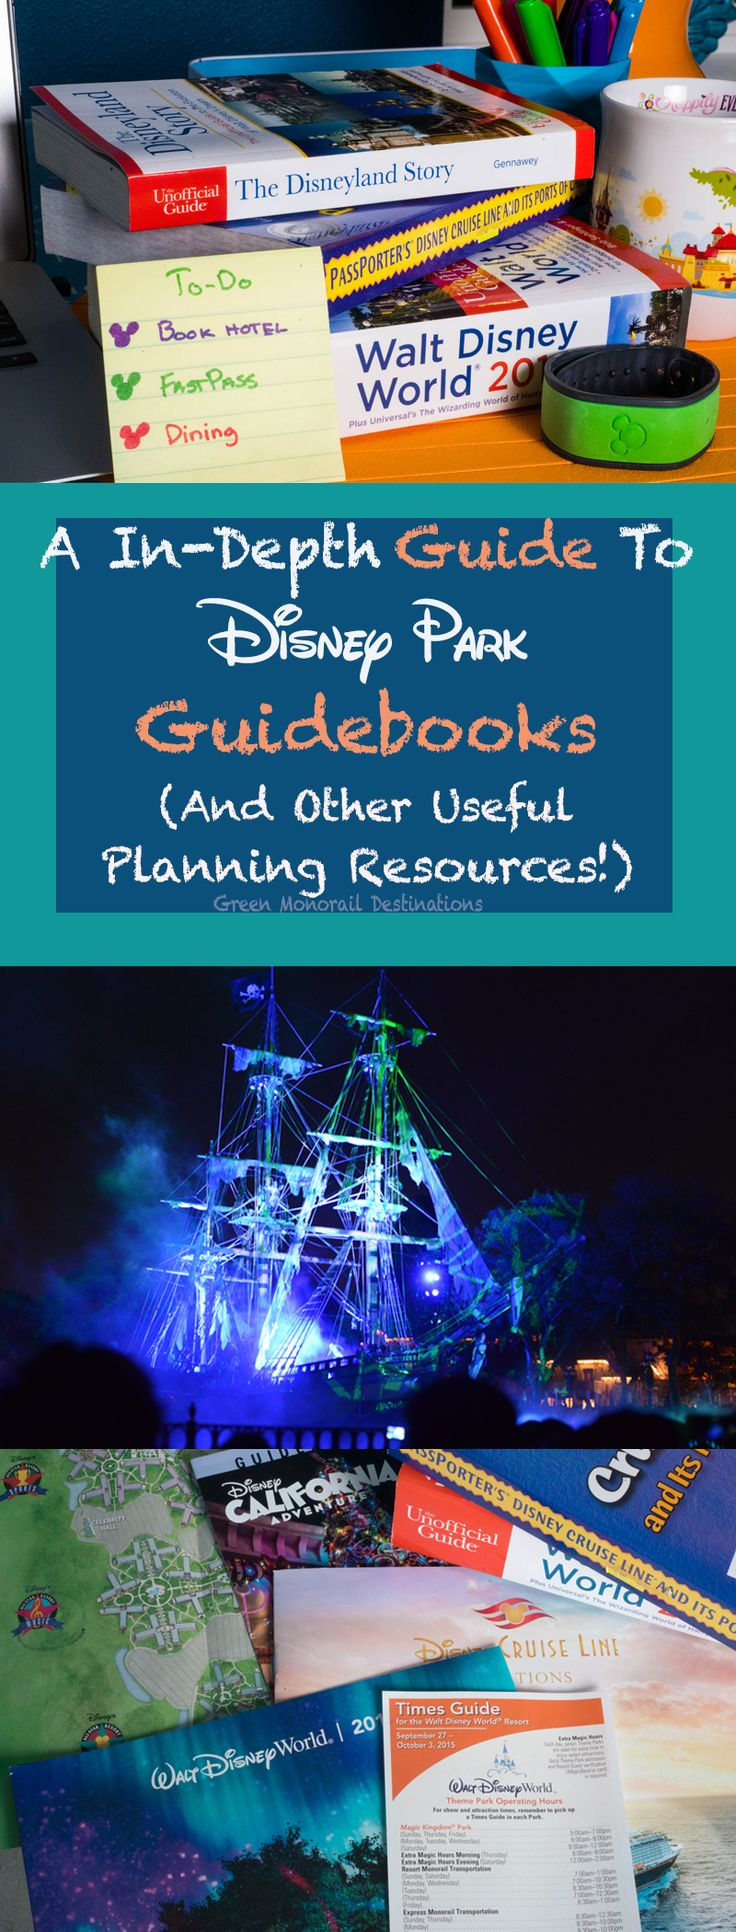 A complete guide to guidebooks and other planning resources to help you plan and organize your Disney vacation! #disneyworld #vacation #planning